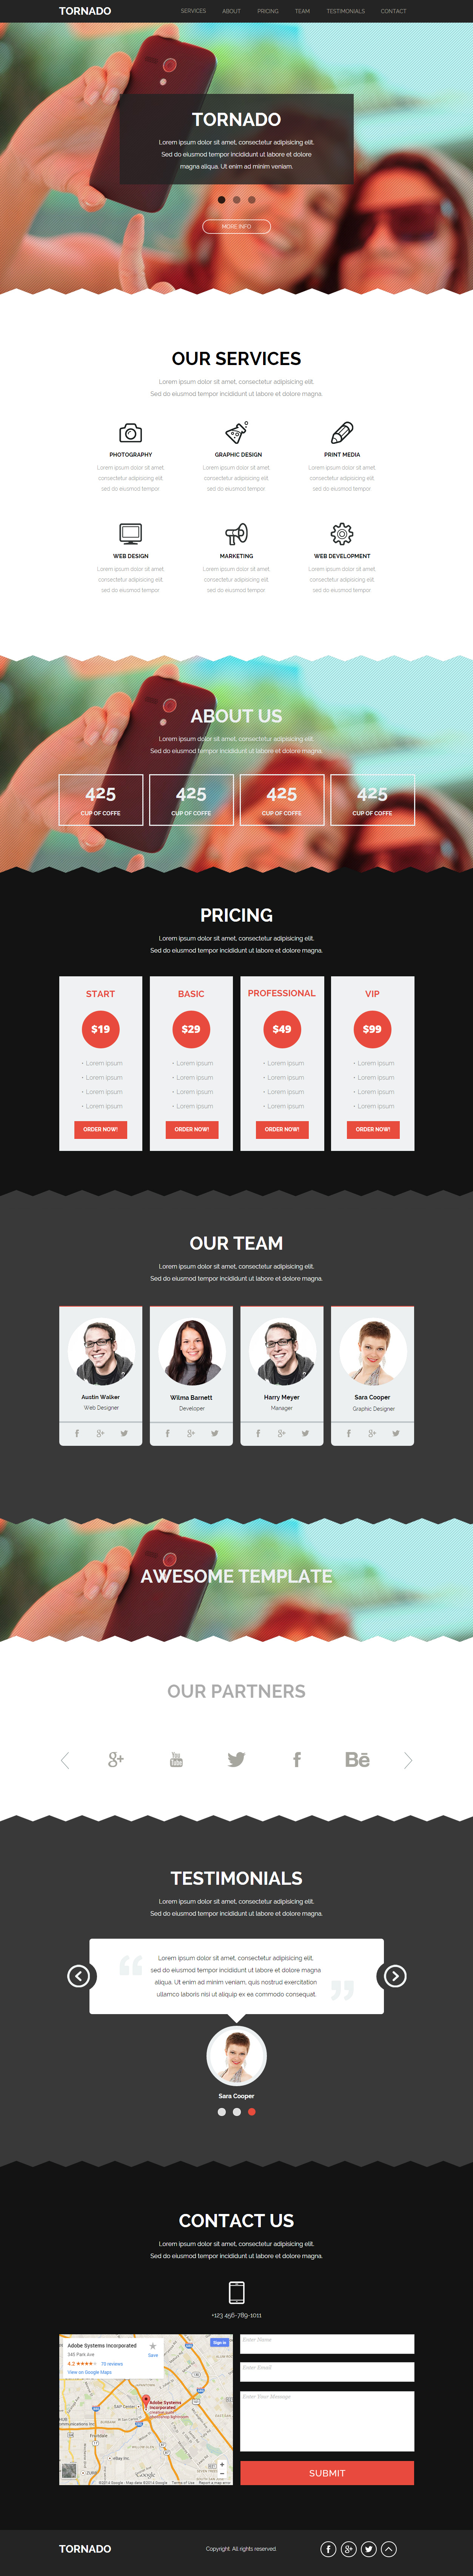 tornado premium one page parallax muse template google fonts